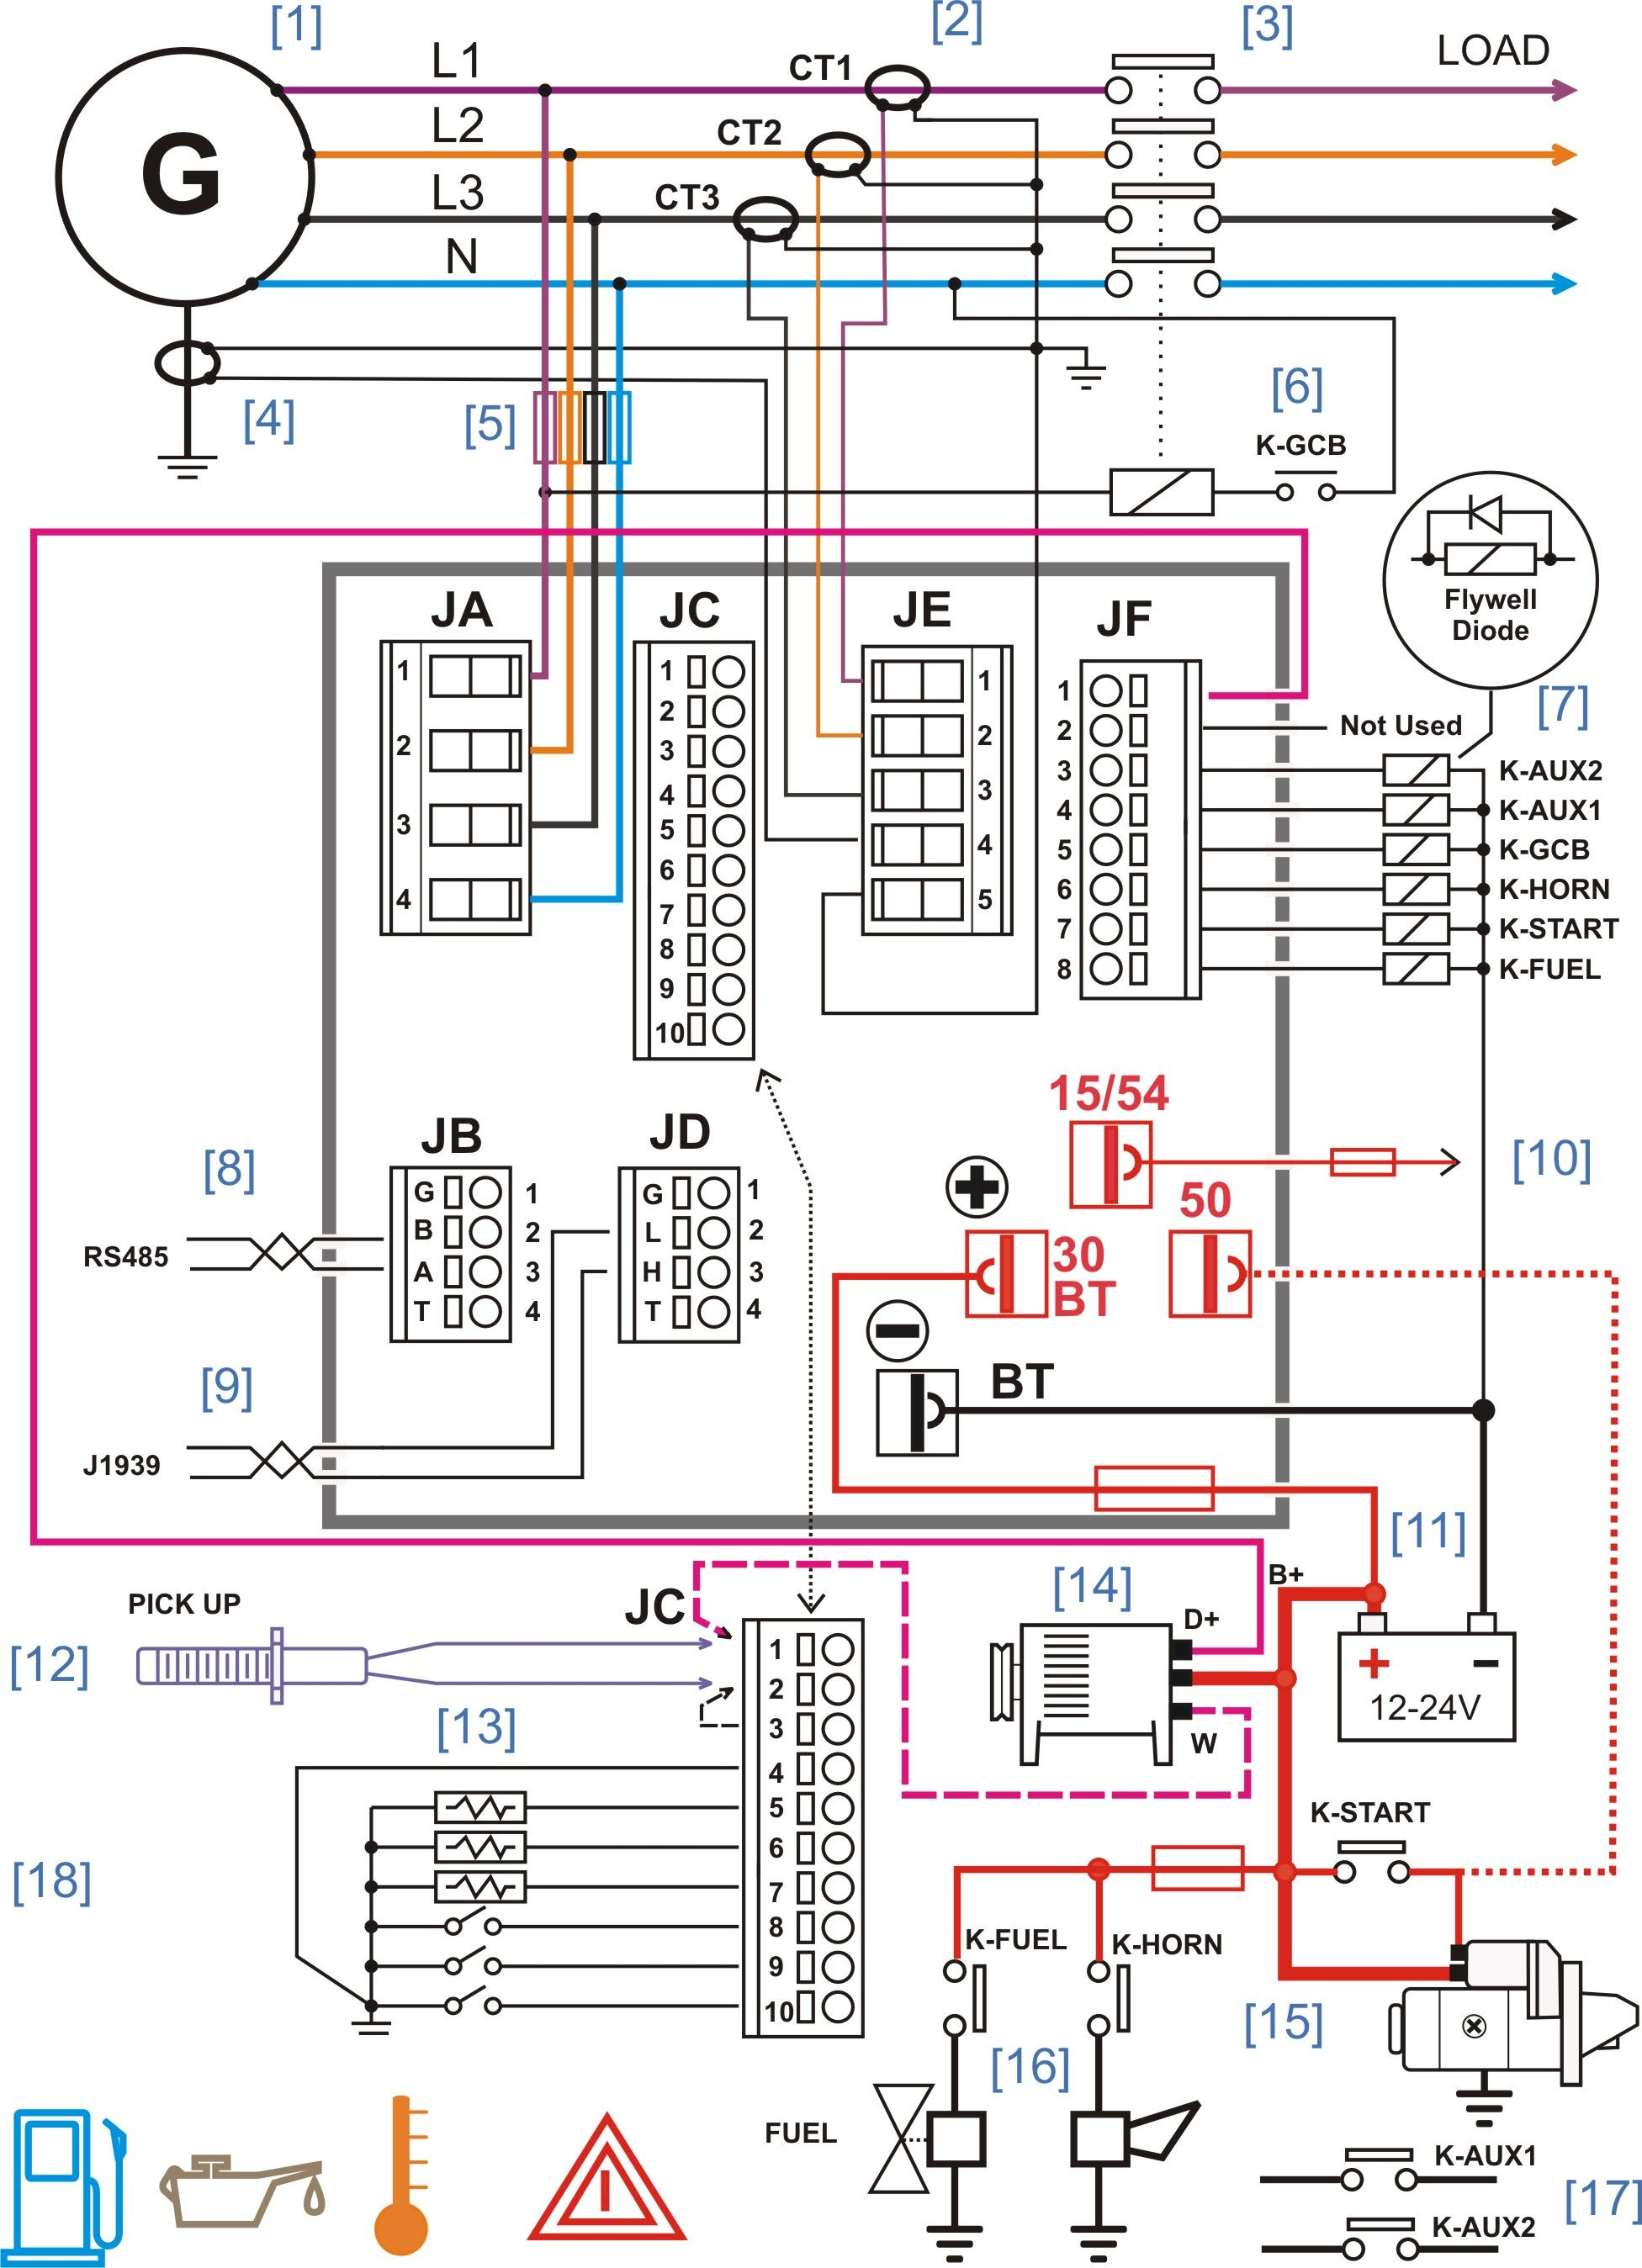 diesel generator control panel wiring diagram diesel generators in